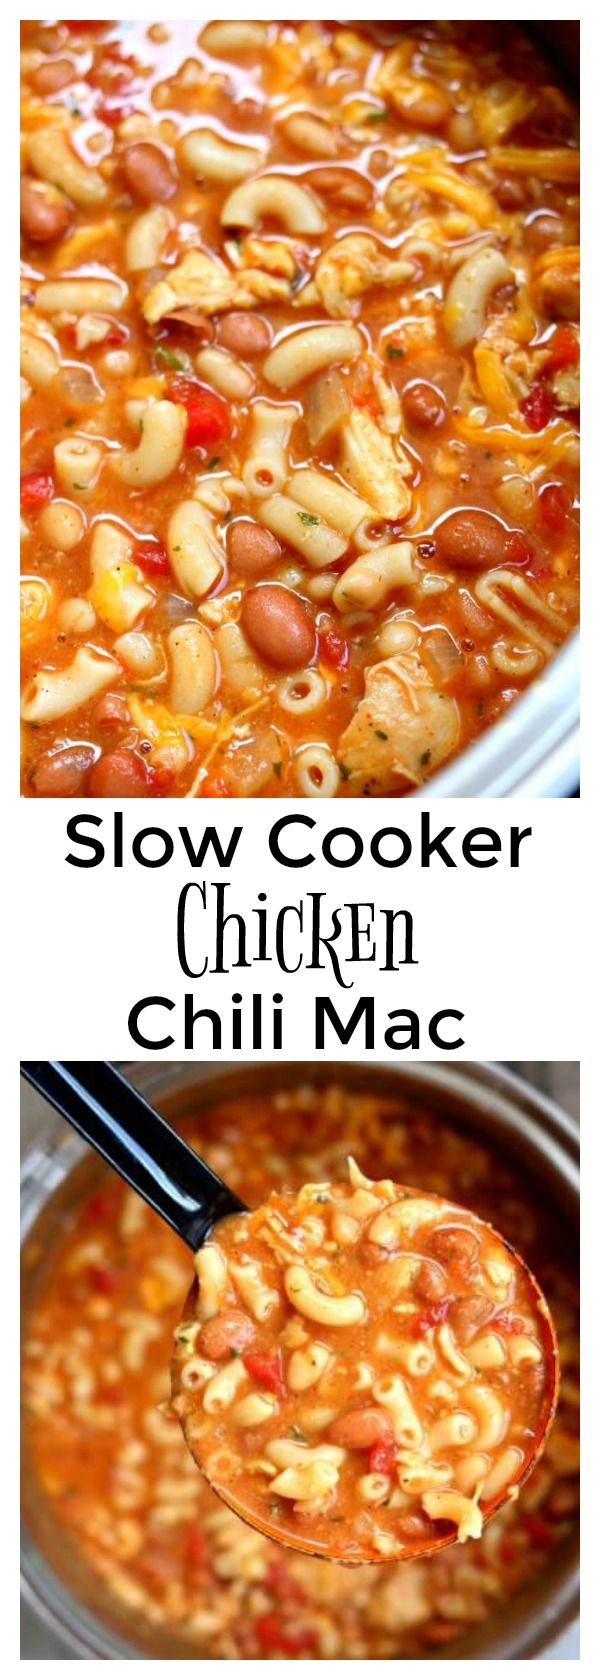 Slow Cooker Chicken Chili Mac–an easy one pot recipe for cheesy chili mac made with tender bites of chicken and two kinds of beans. A perfect easy weeknight meal.  #ad #SWBeans #IC @swbeans